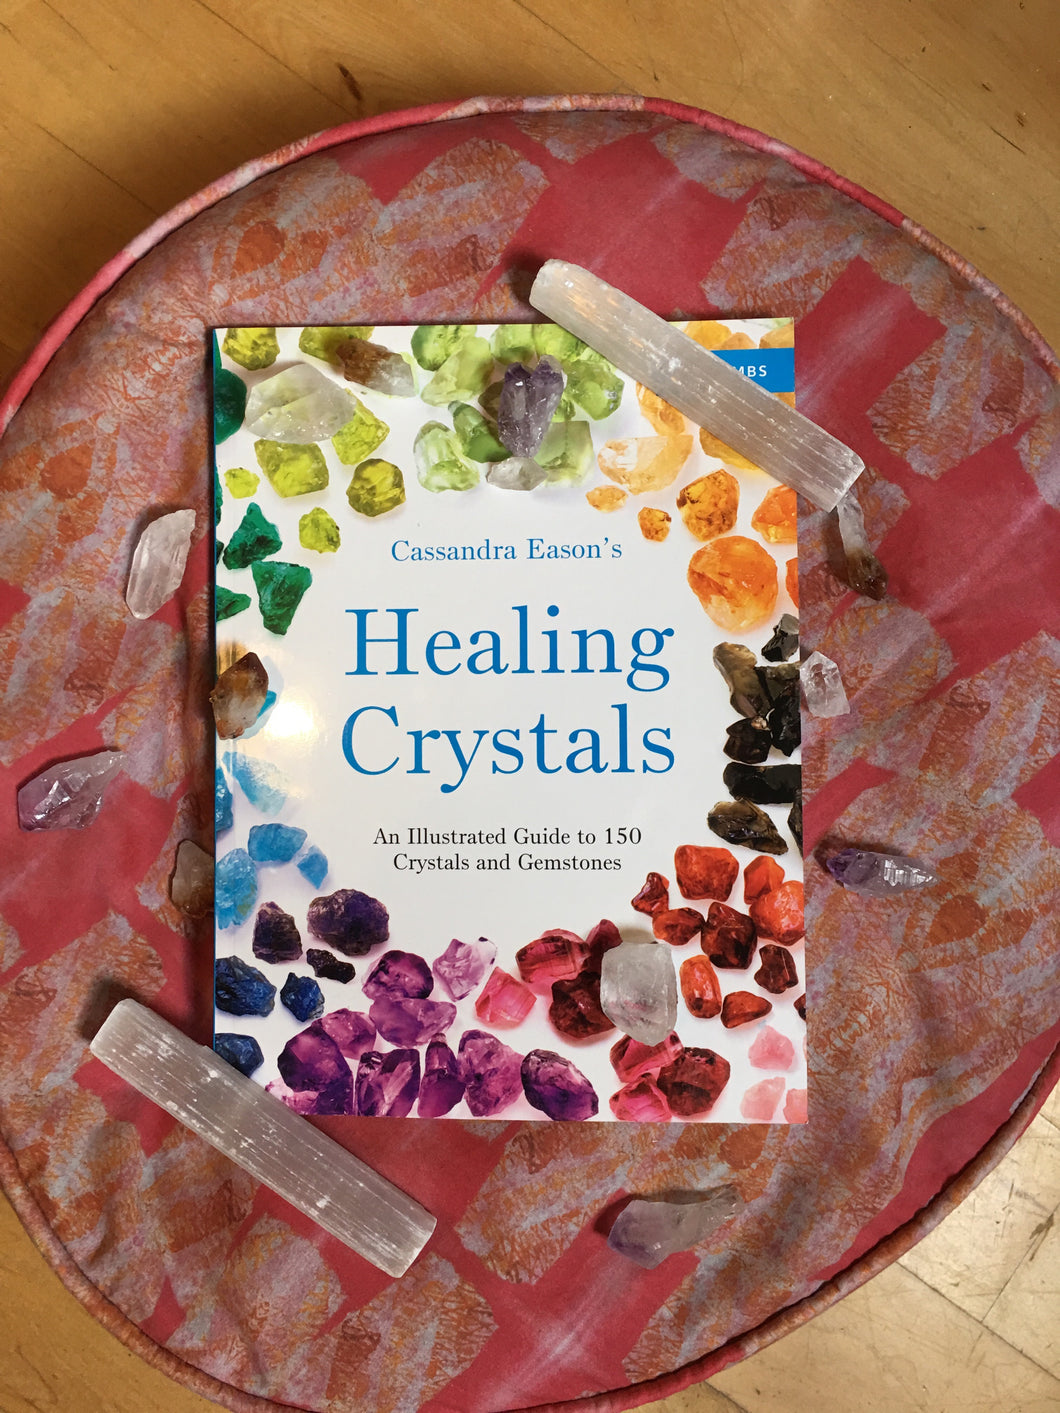 Healing Crystals: An Illustrated Guide to 150 Crystals and Gemstones